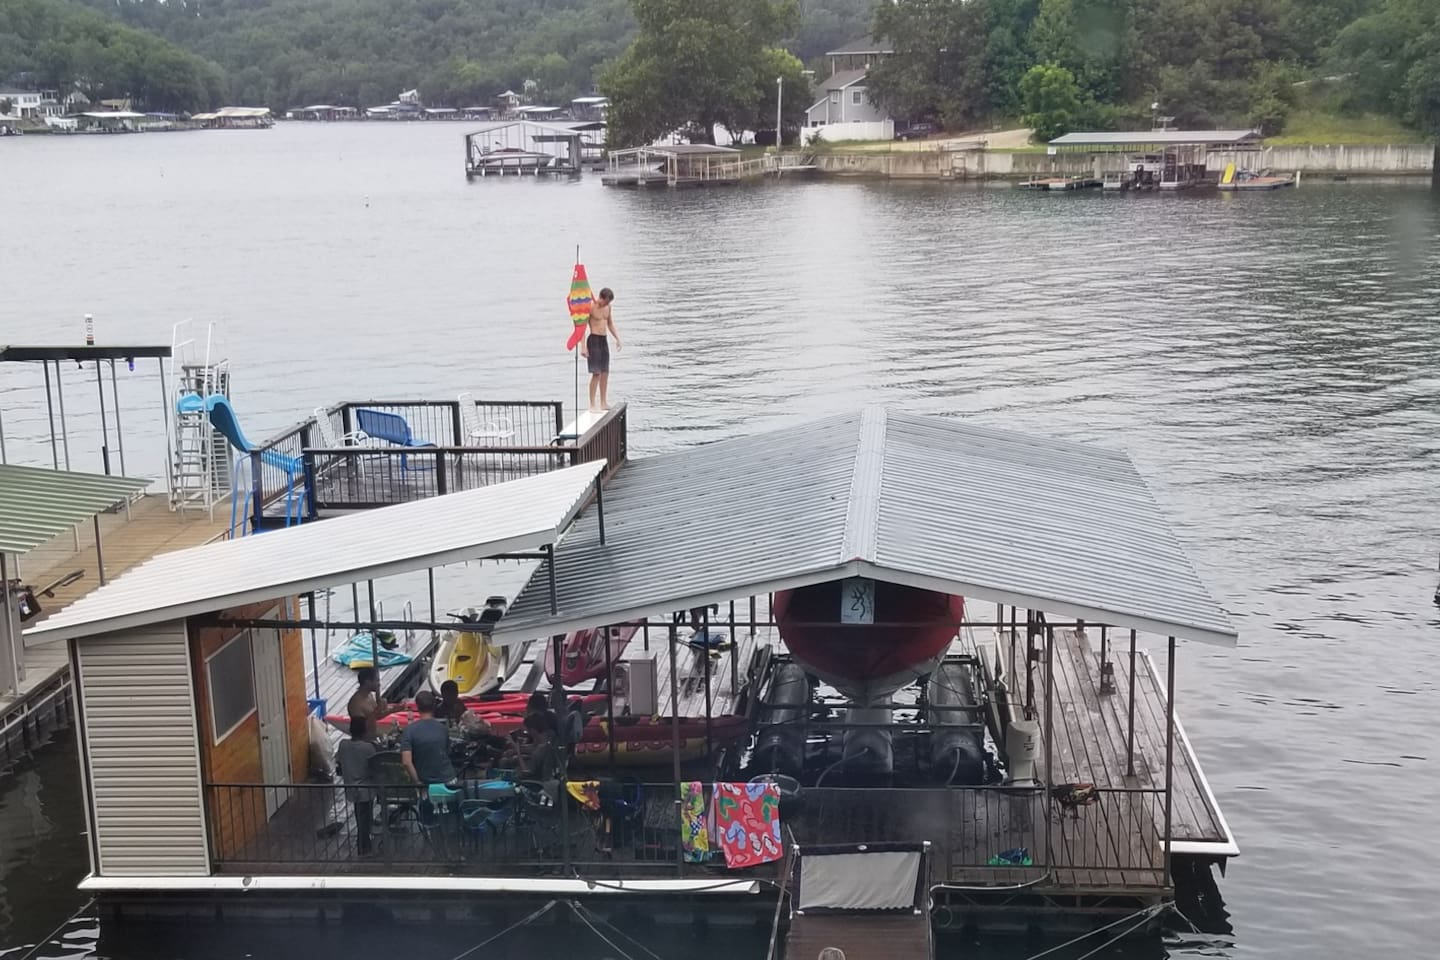 Killer dock with upper deck! So many activities to enjoy including swimming, a diving board, a new hammock chair (just installed), lily pad, two kayaks, covered entertainment area with table and chairs. Parking on sides of bumper-lined dock.